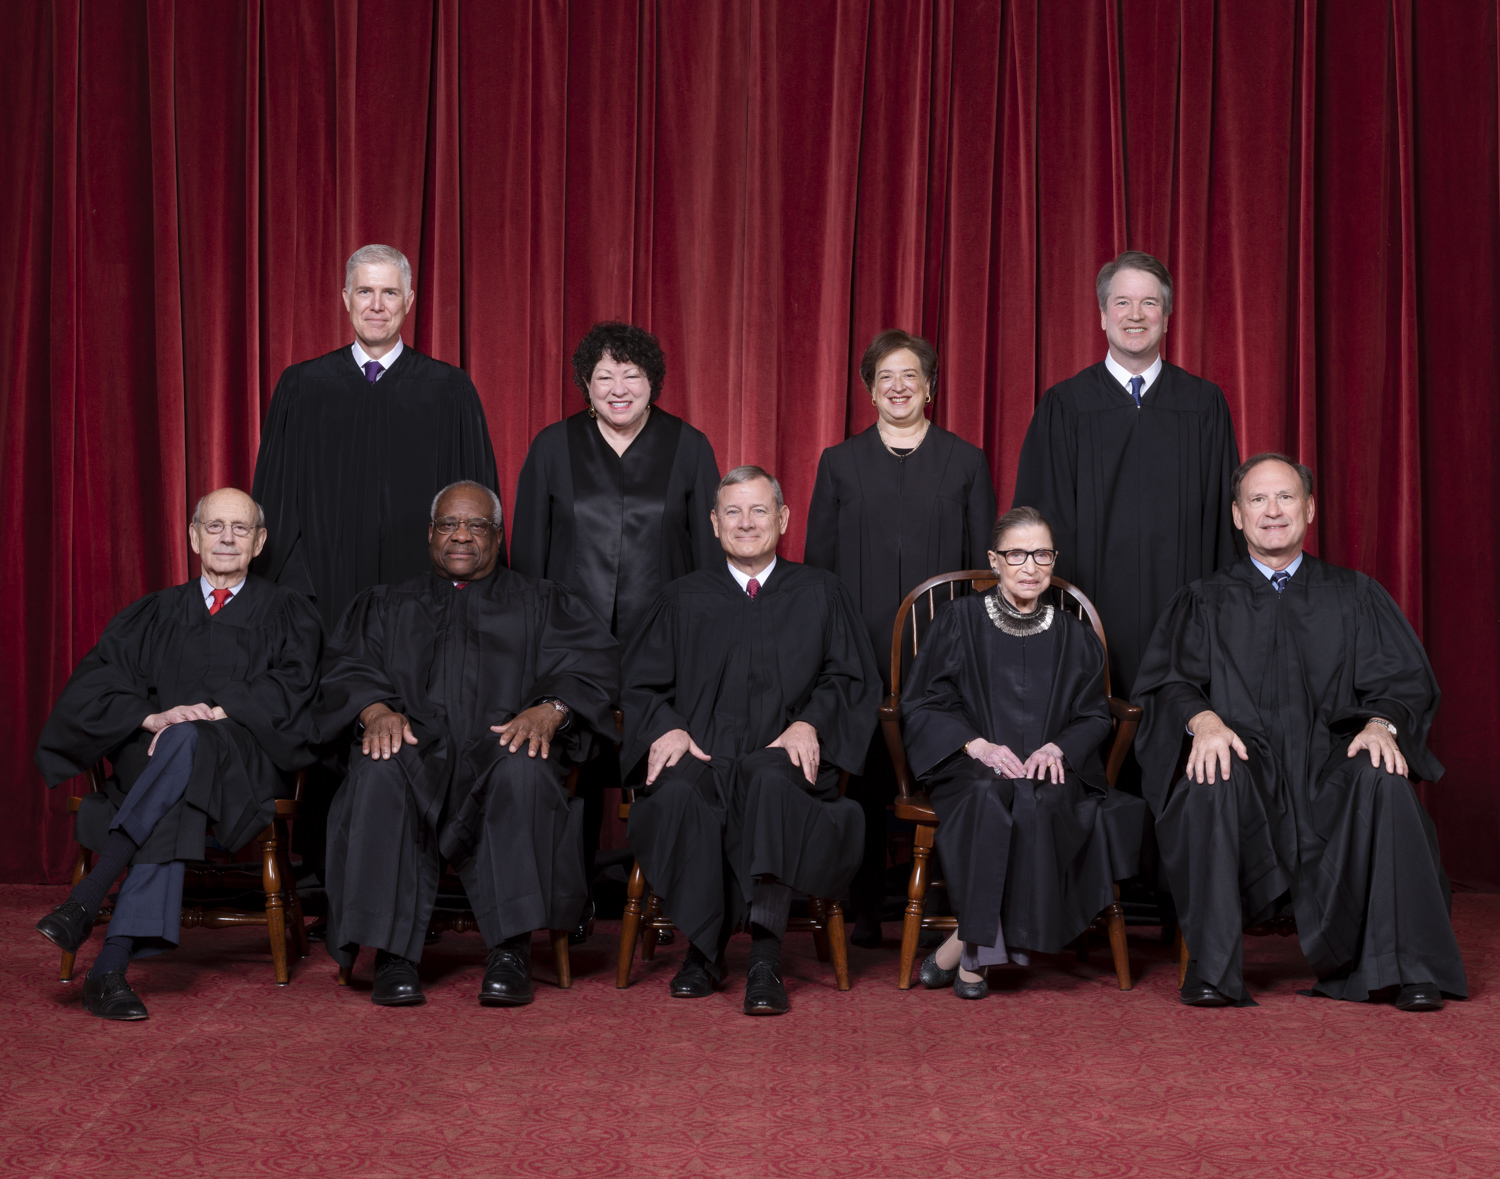 Pro-Life Supreme Court Justices Rule 'Not So Much' When It Comes to Wisconsin Voters